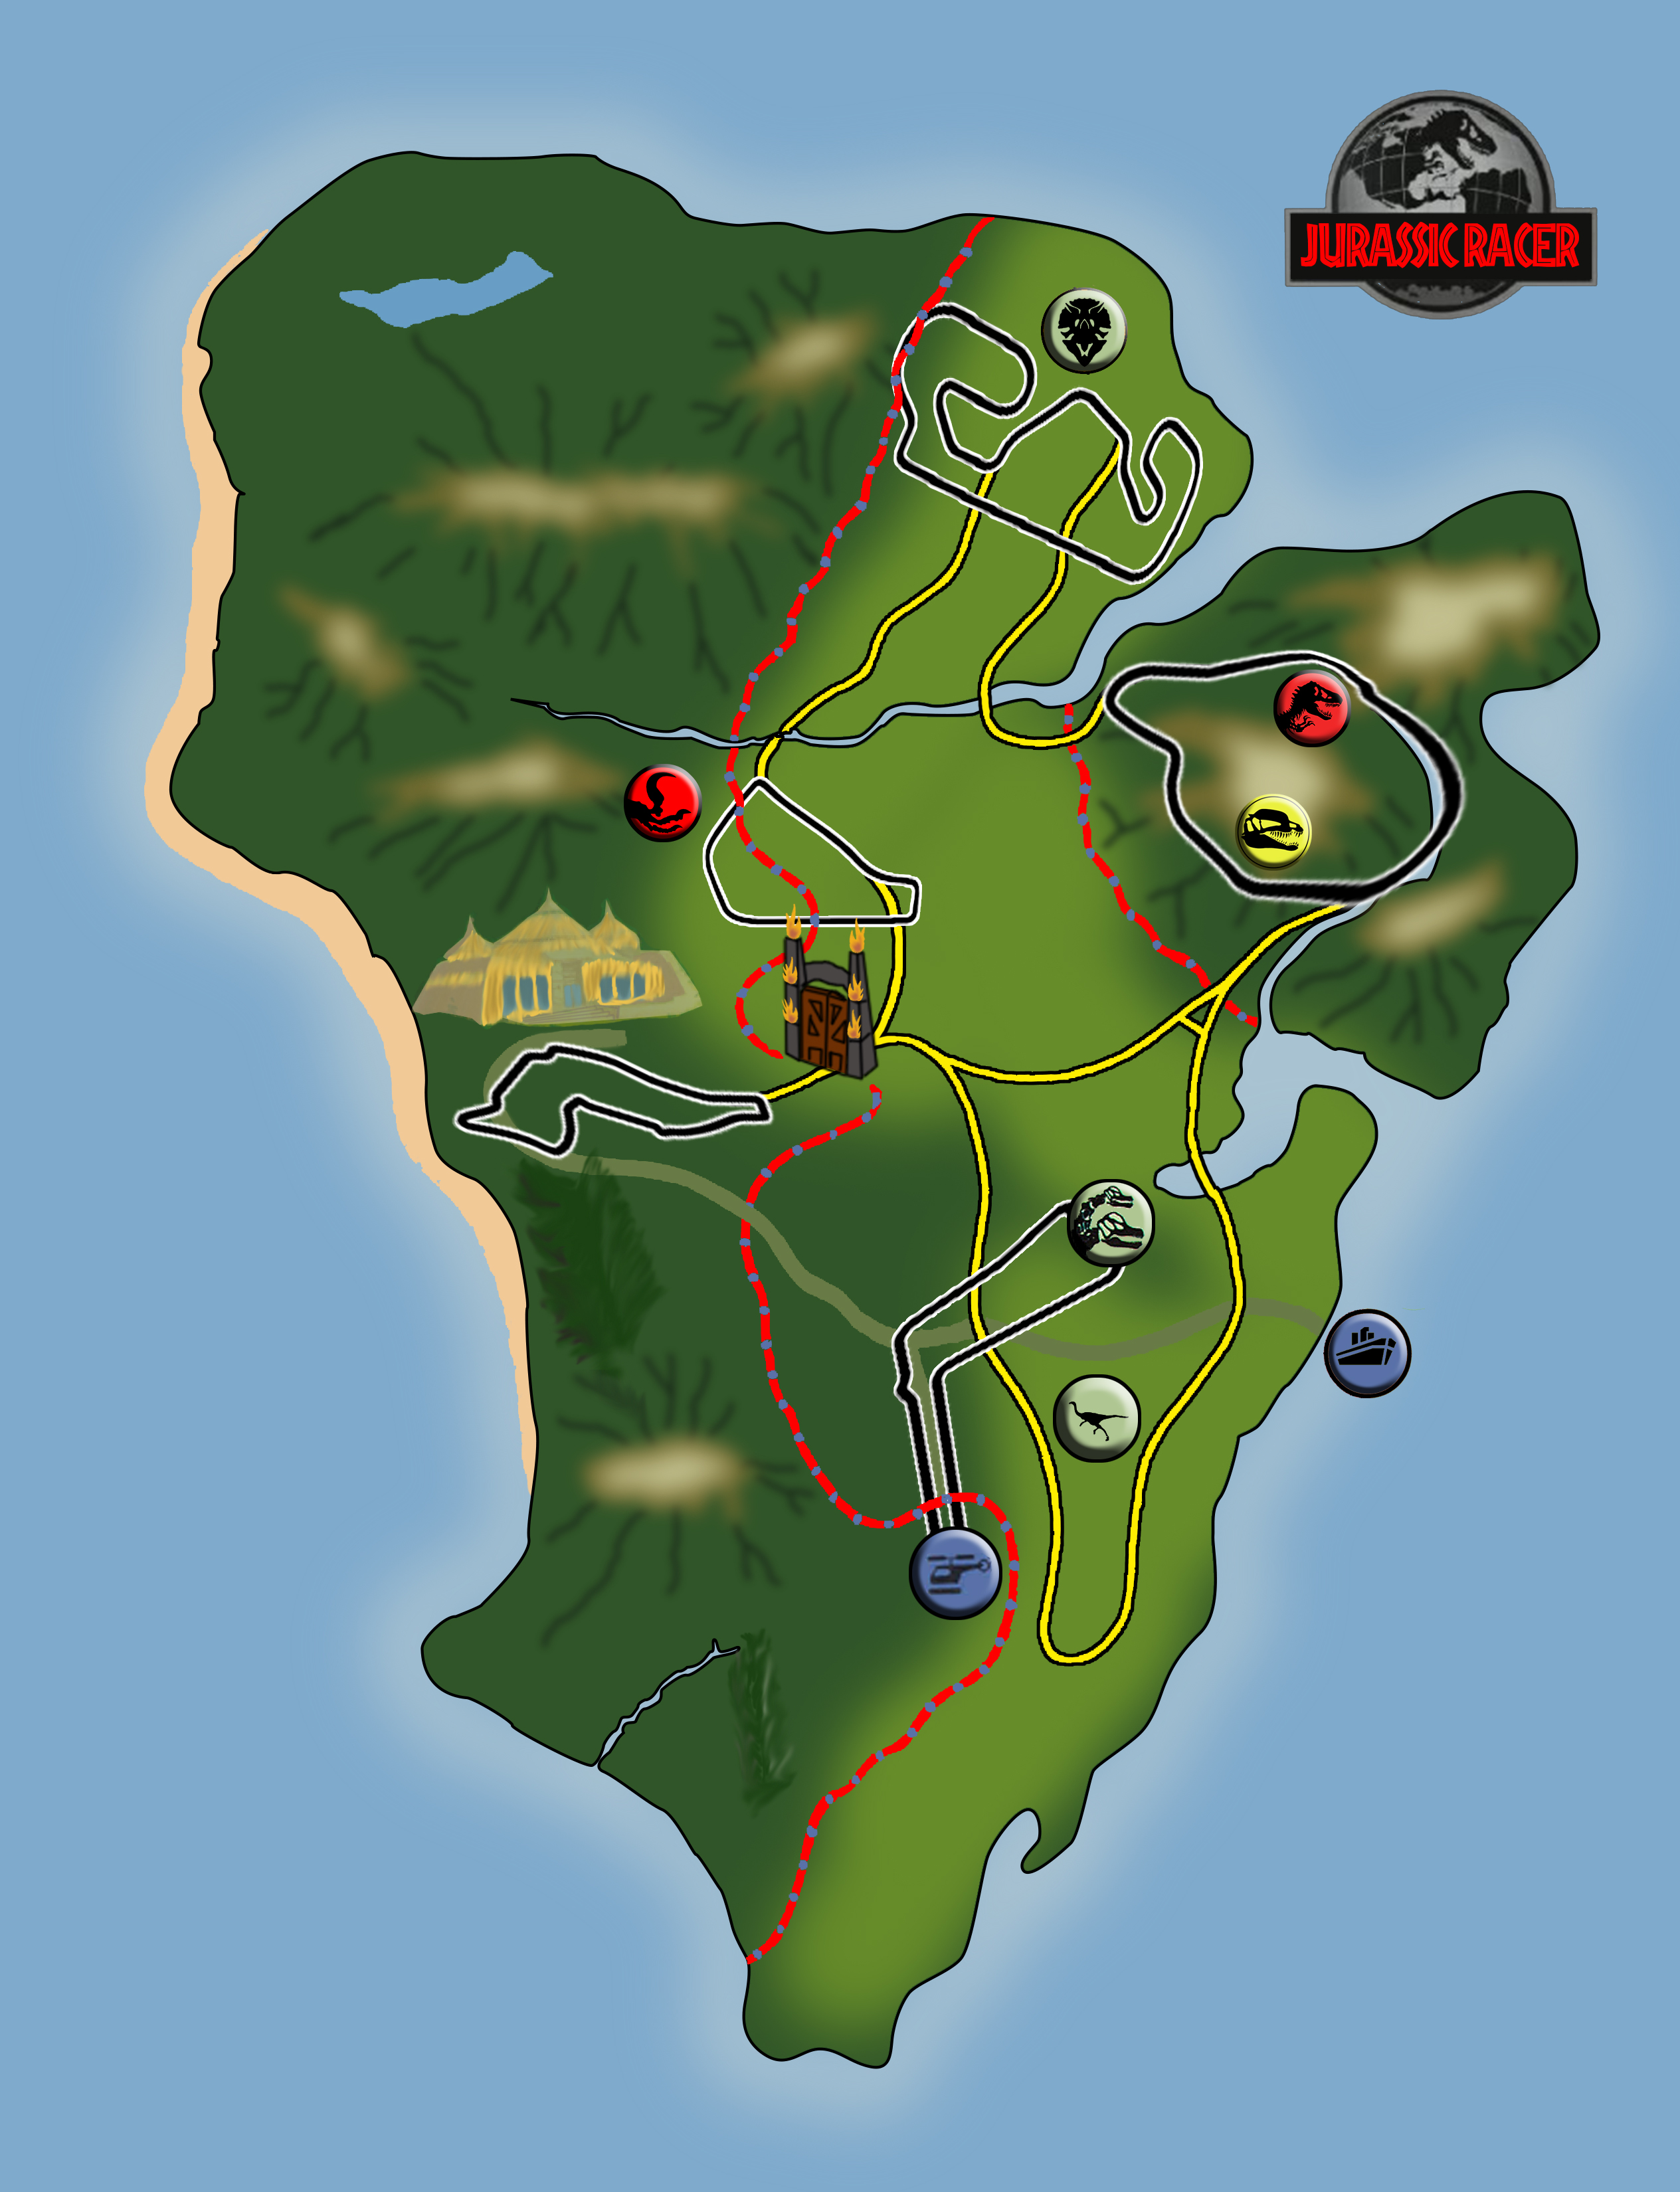 Jurassic Park Map Image Indie Db